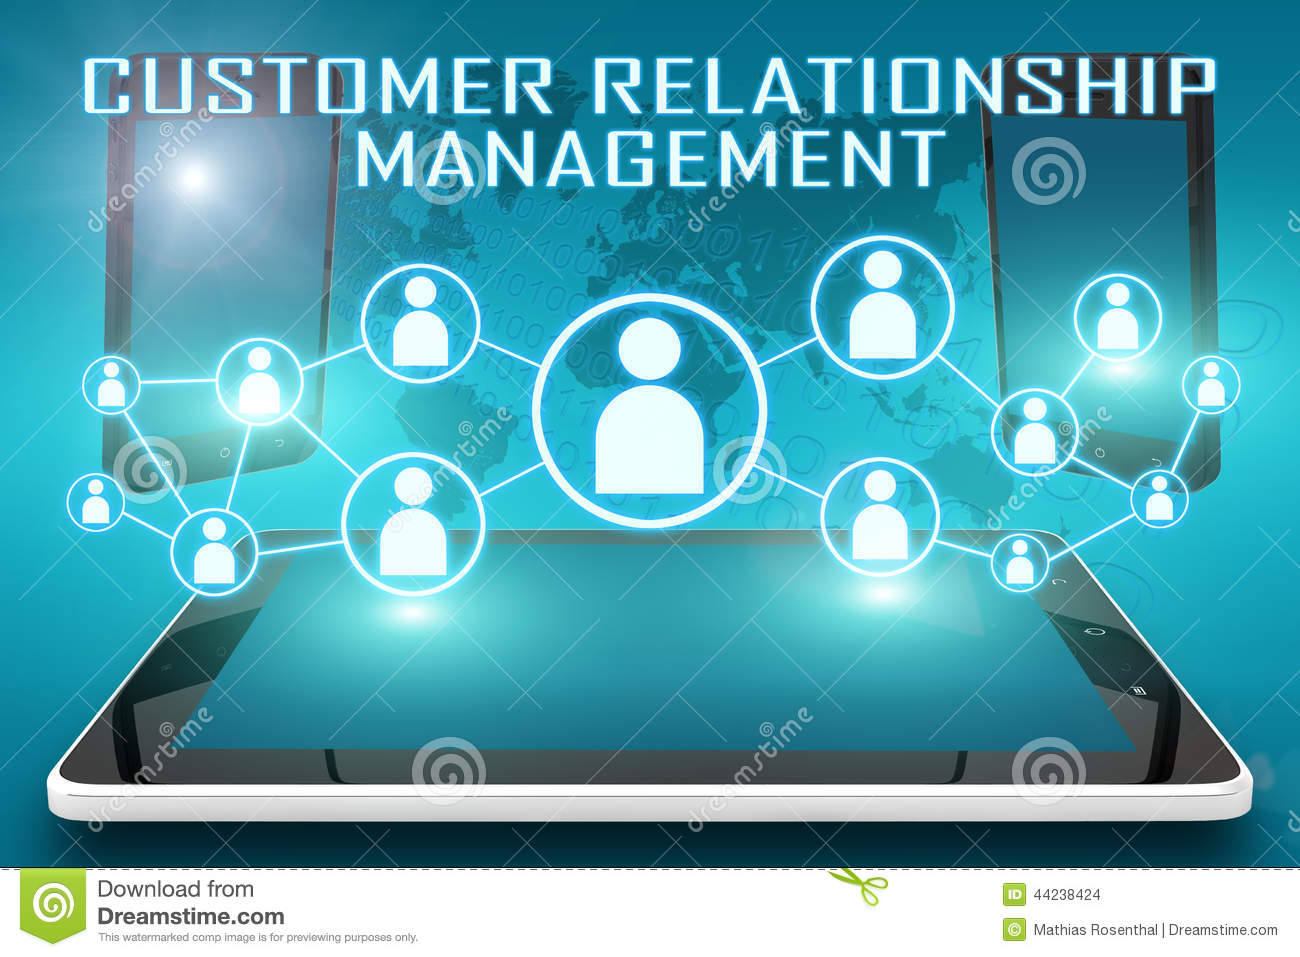 Customer Relationship Management Stock Illustration  Illustration of quality management 44238424